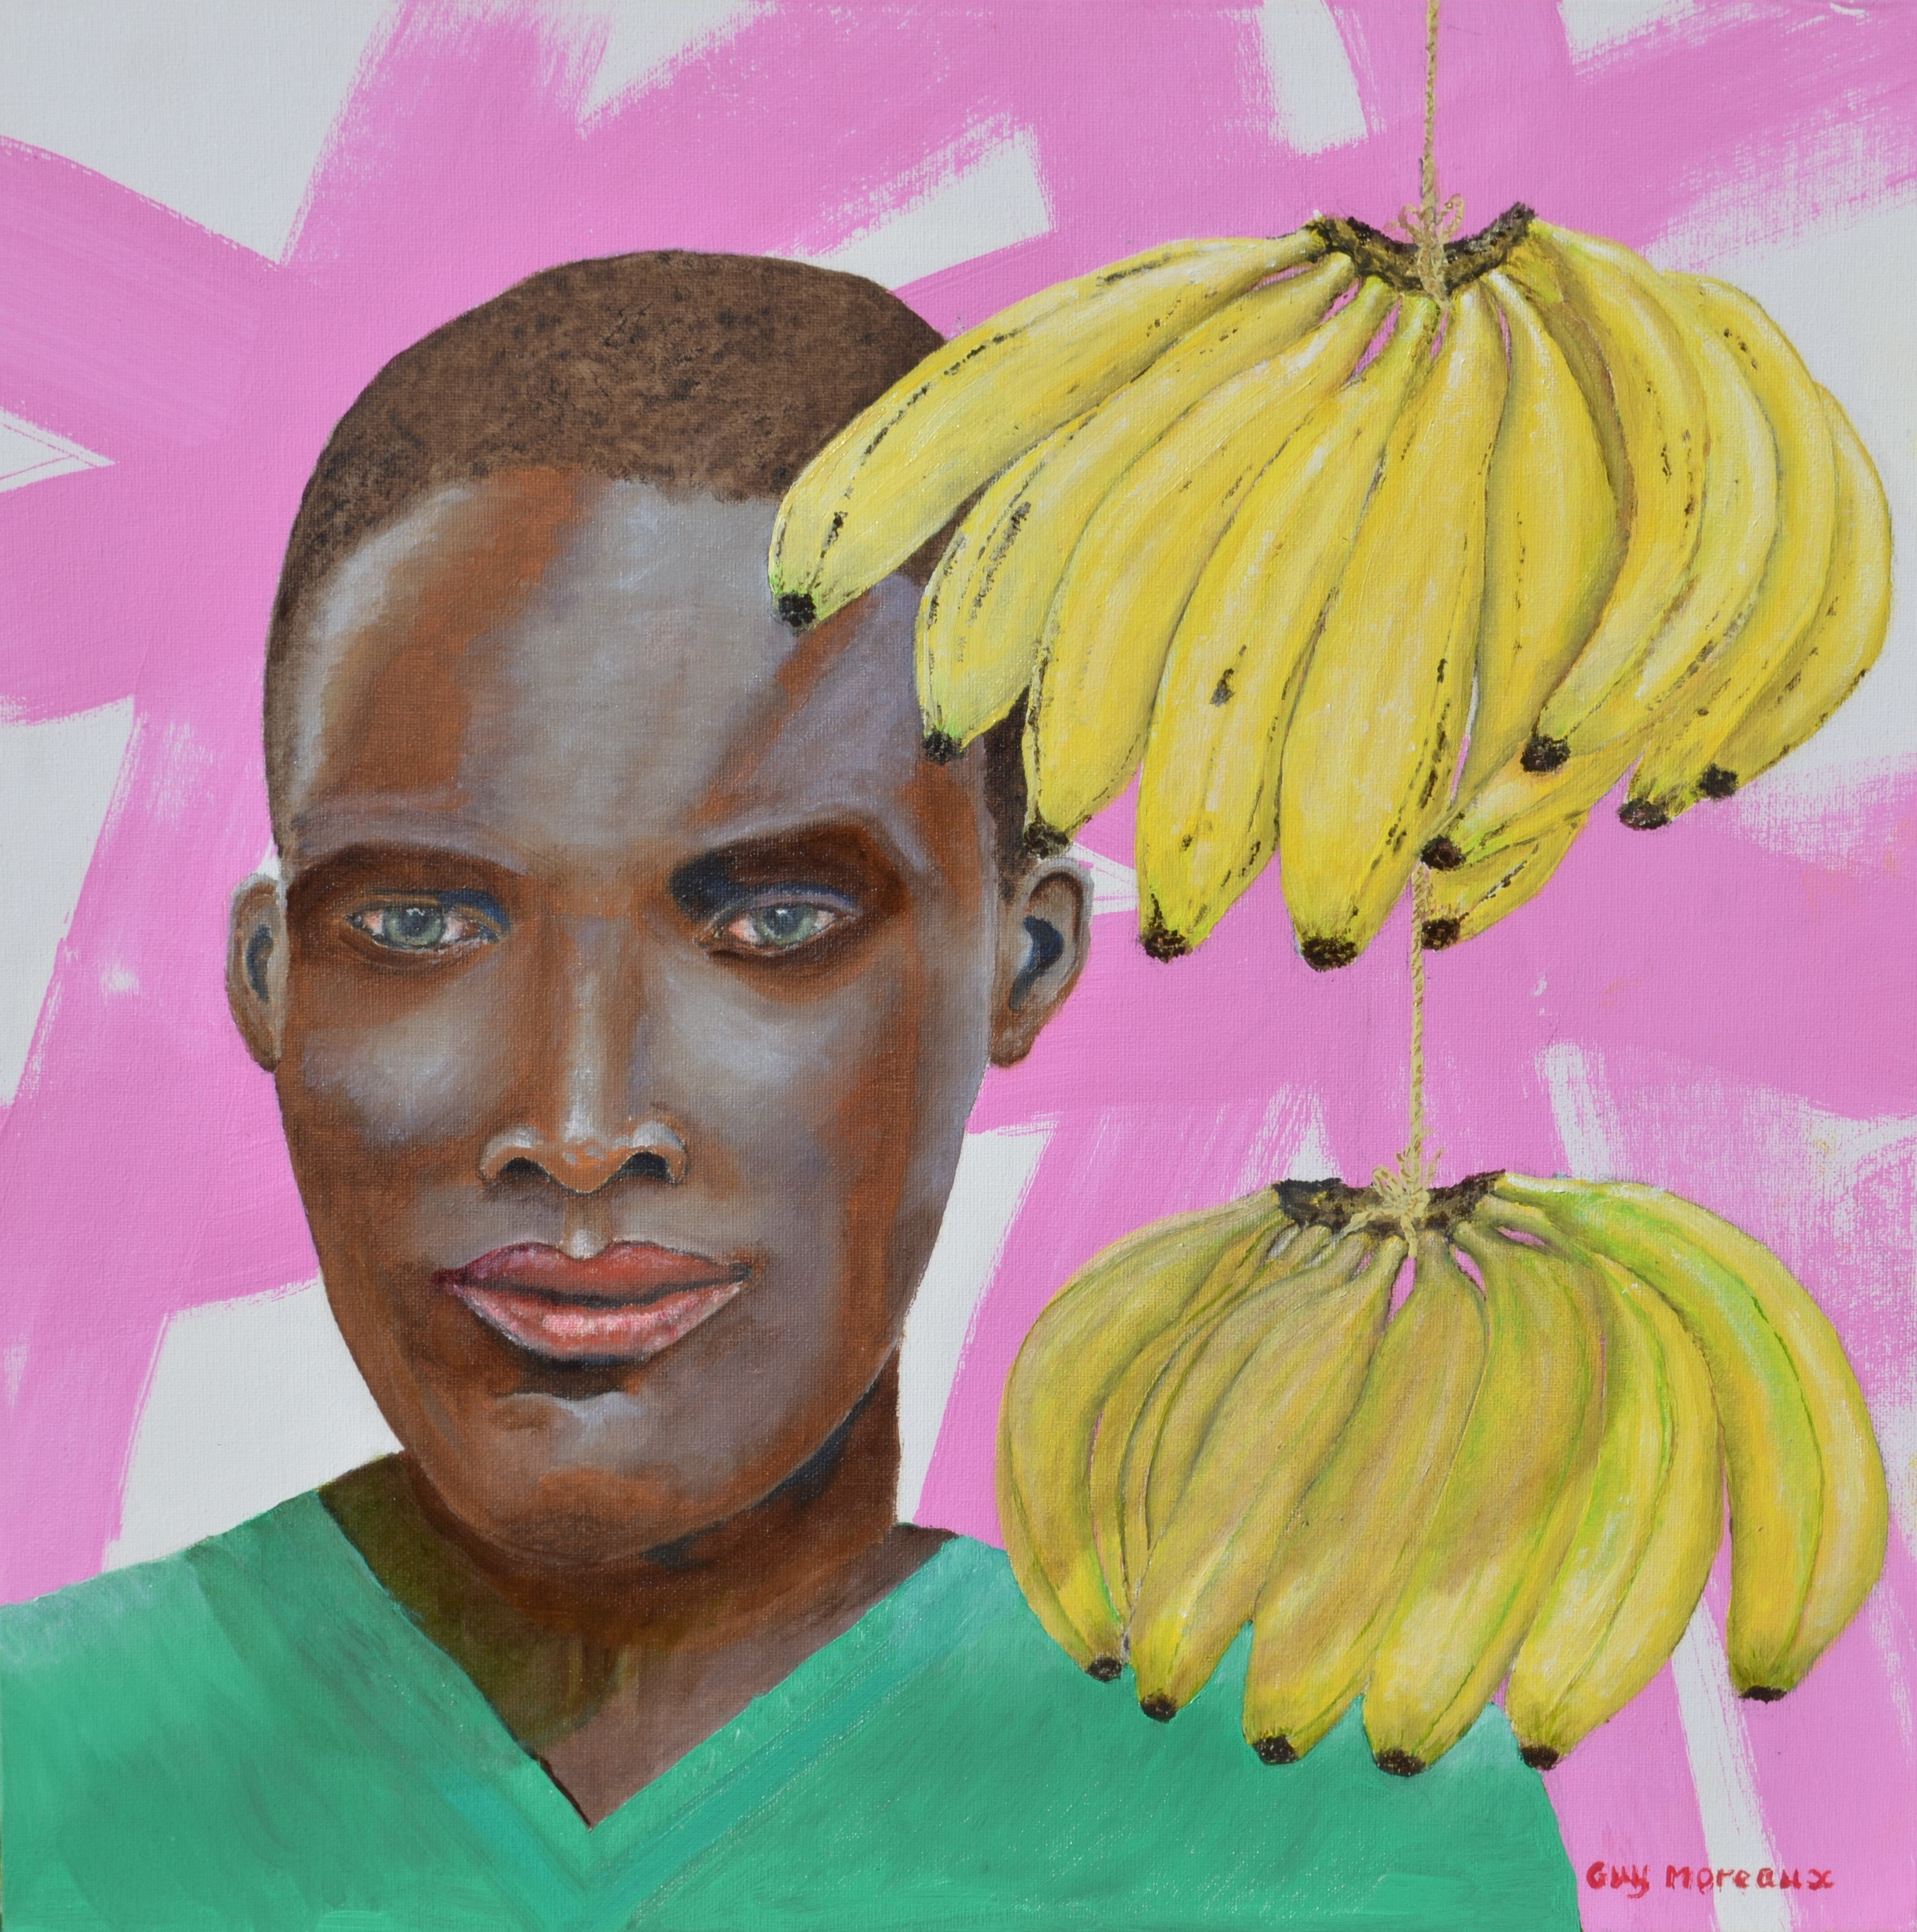 Guy Octaaf Moreaux: 'mary the banana lady', 2020 Oil Painting, Portrait. Bananas are sold along the streets and roads in Kenya, hung on a bit of string.  This beauty is selling bananas.Acrylic and oil paint on canvasboard. ...